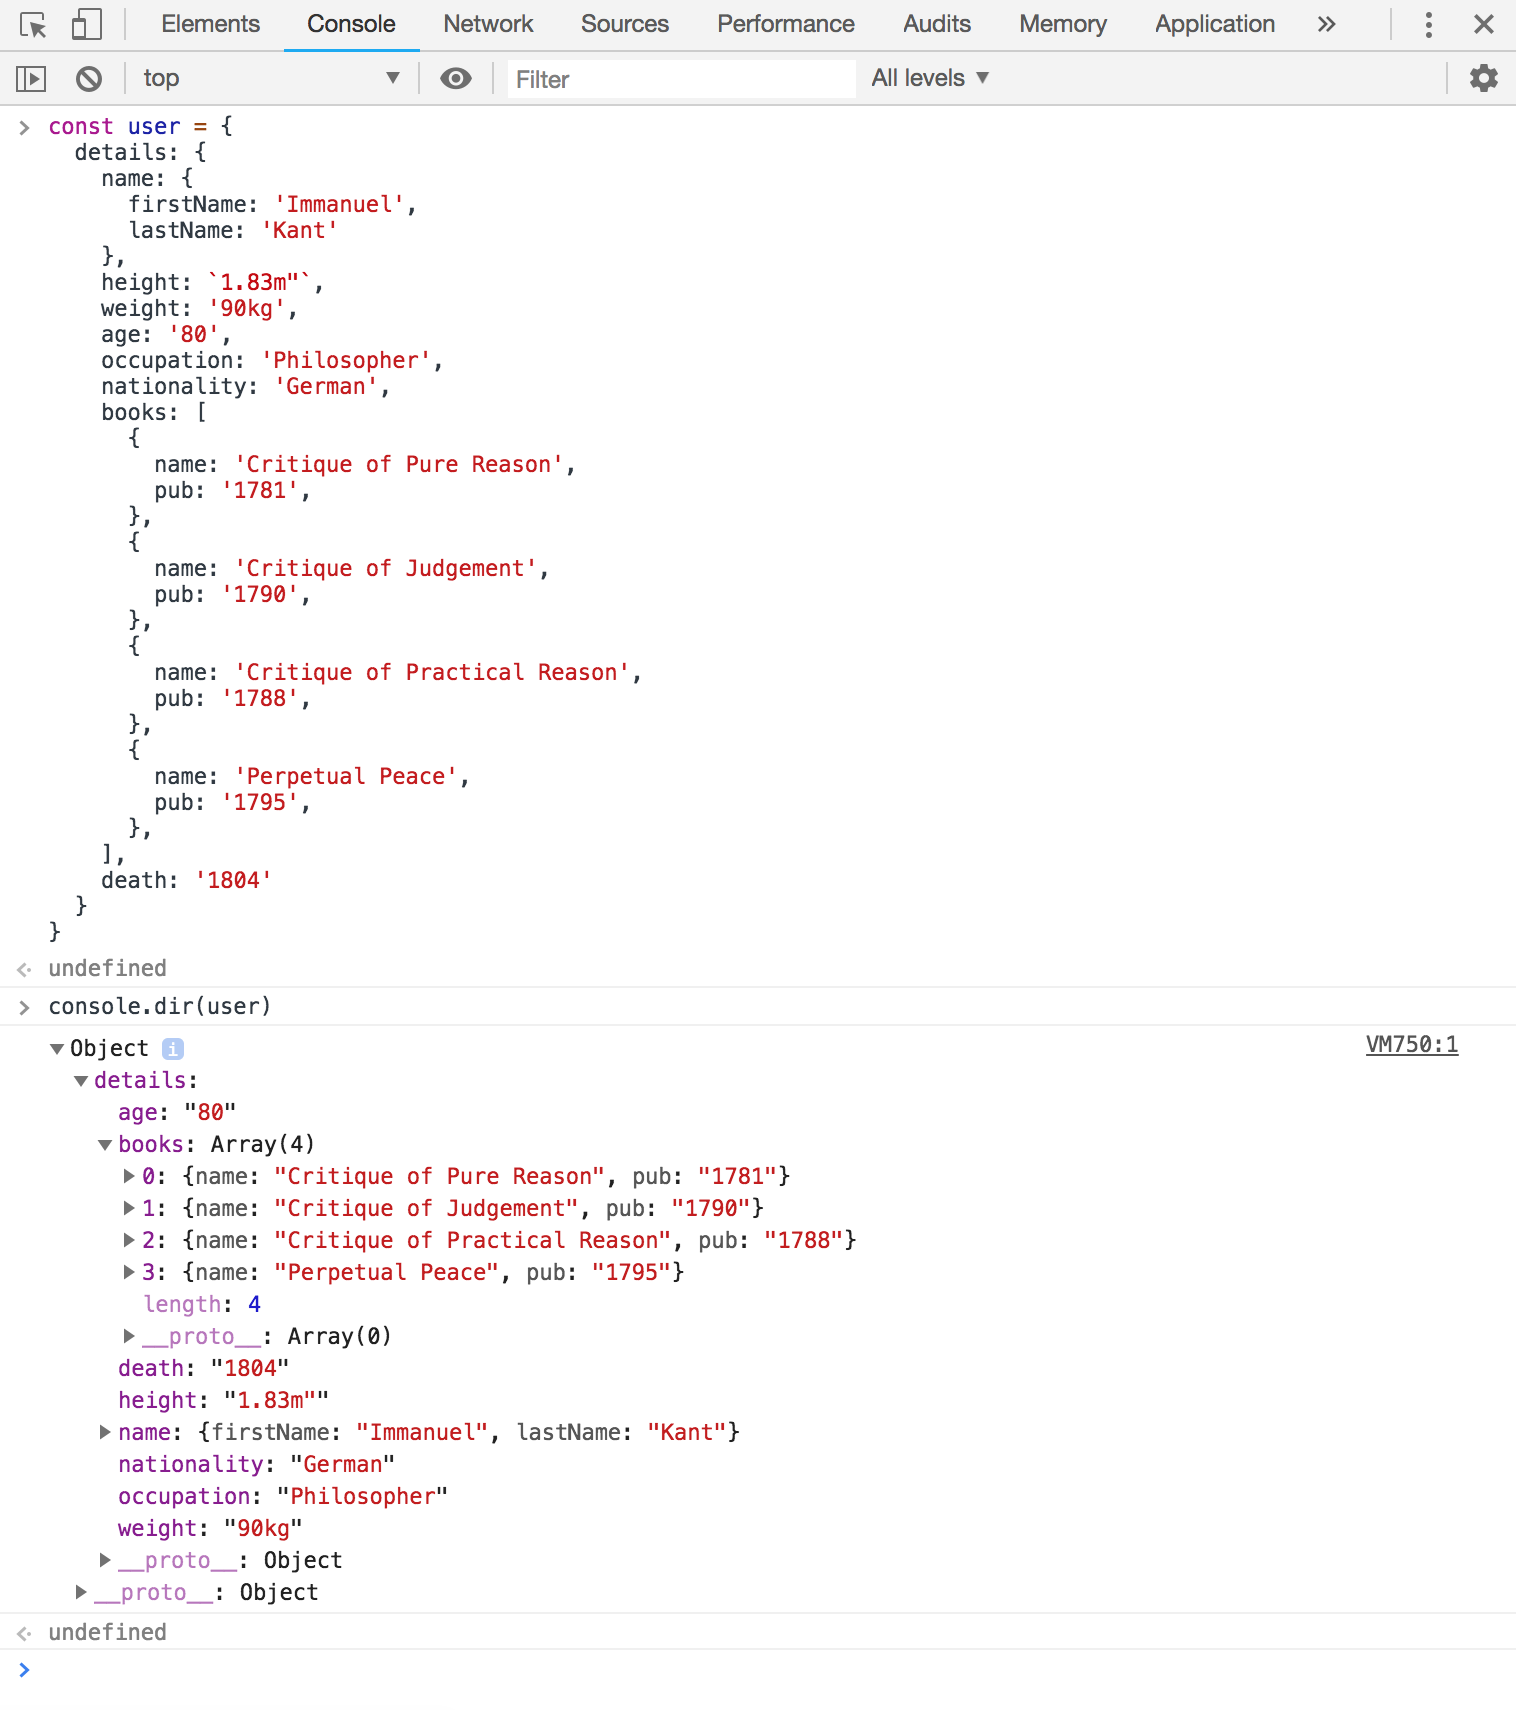 Screenshot of the user object displayed in a hierarchical dir format.